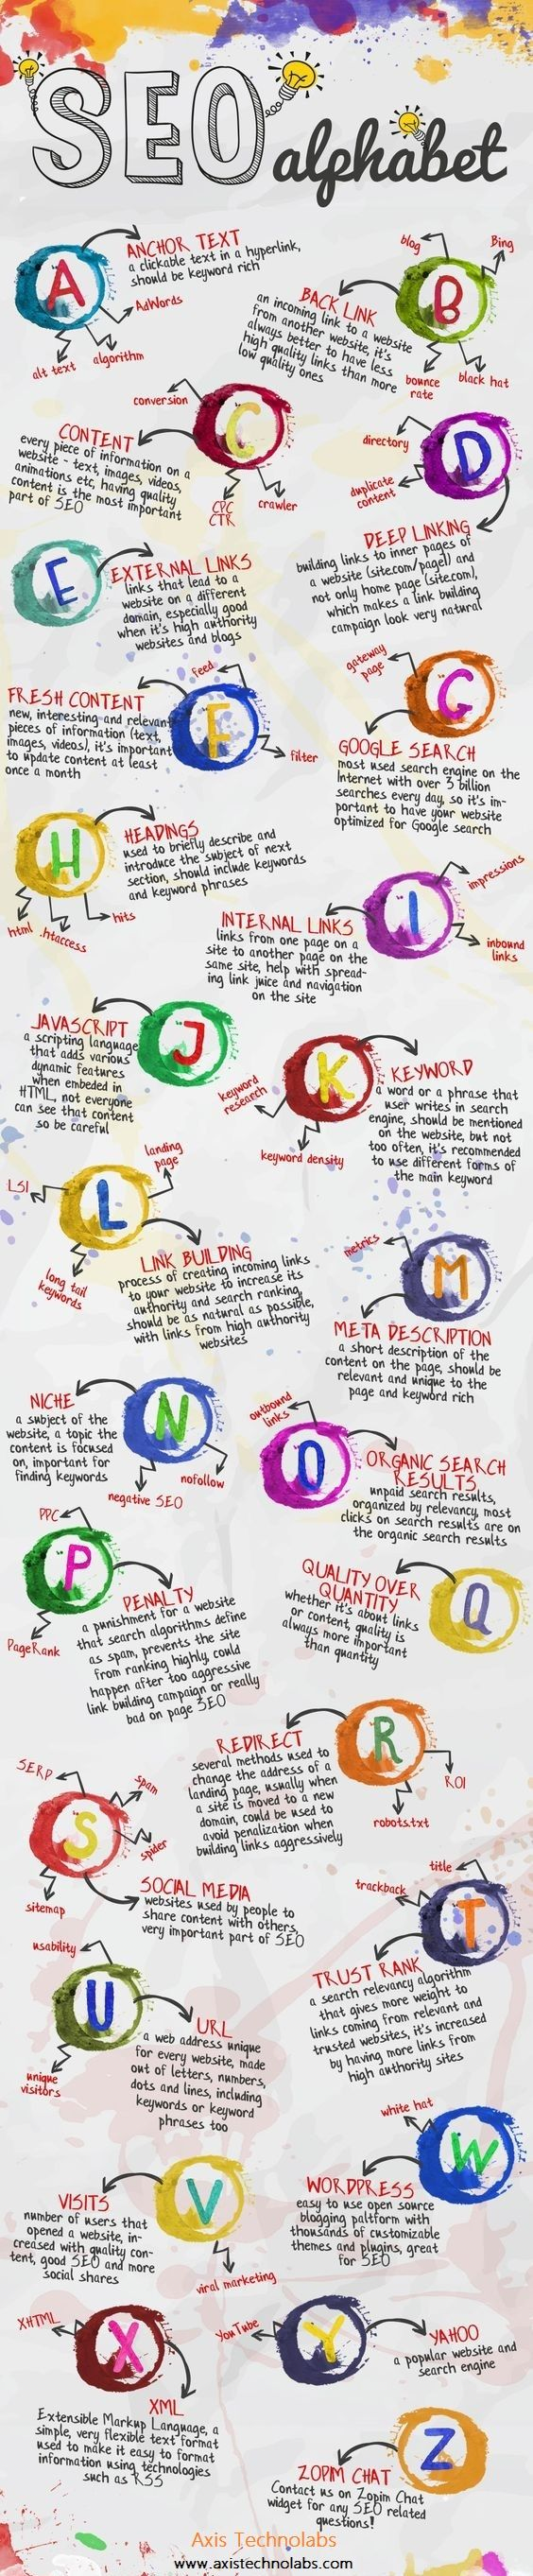 """""""SEO alphabetical tips and tricks with Axis Technolabs. Axis is providing world wide SEO Services for getting your websites higher ranks in all the search engines.  Kindly get back to us on: www.axistechnolabs.com"""""""